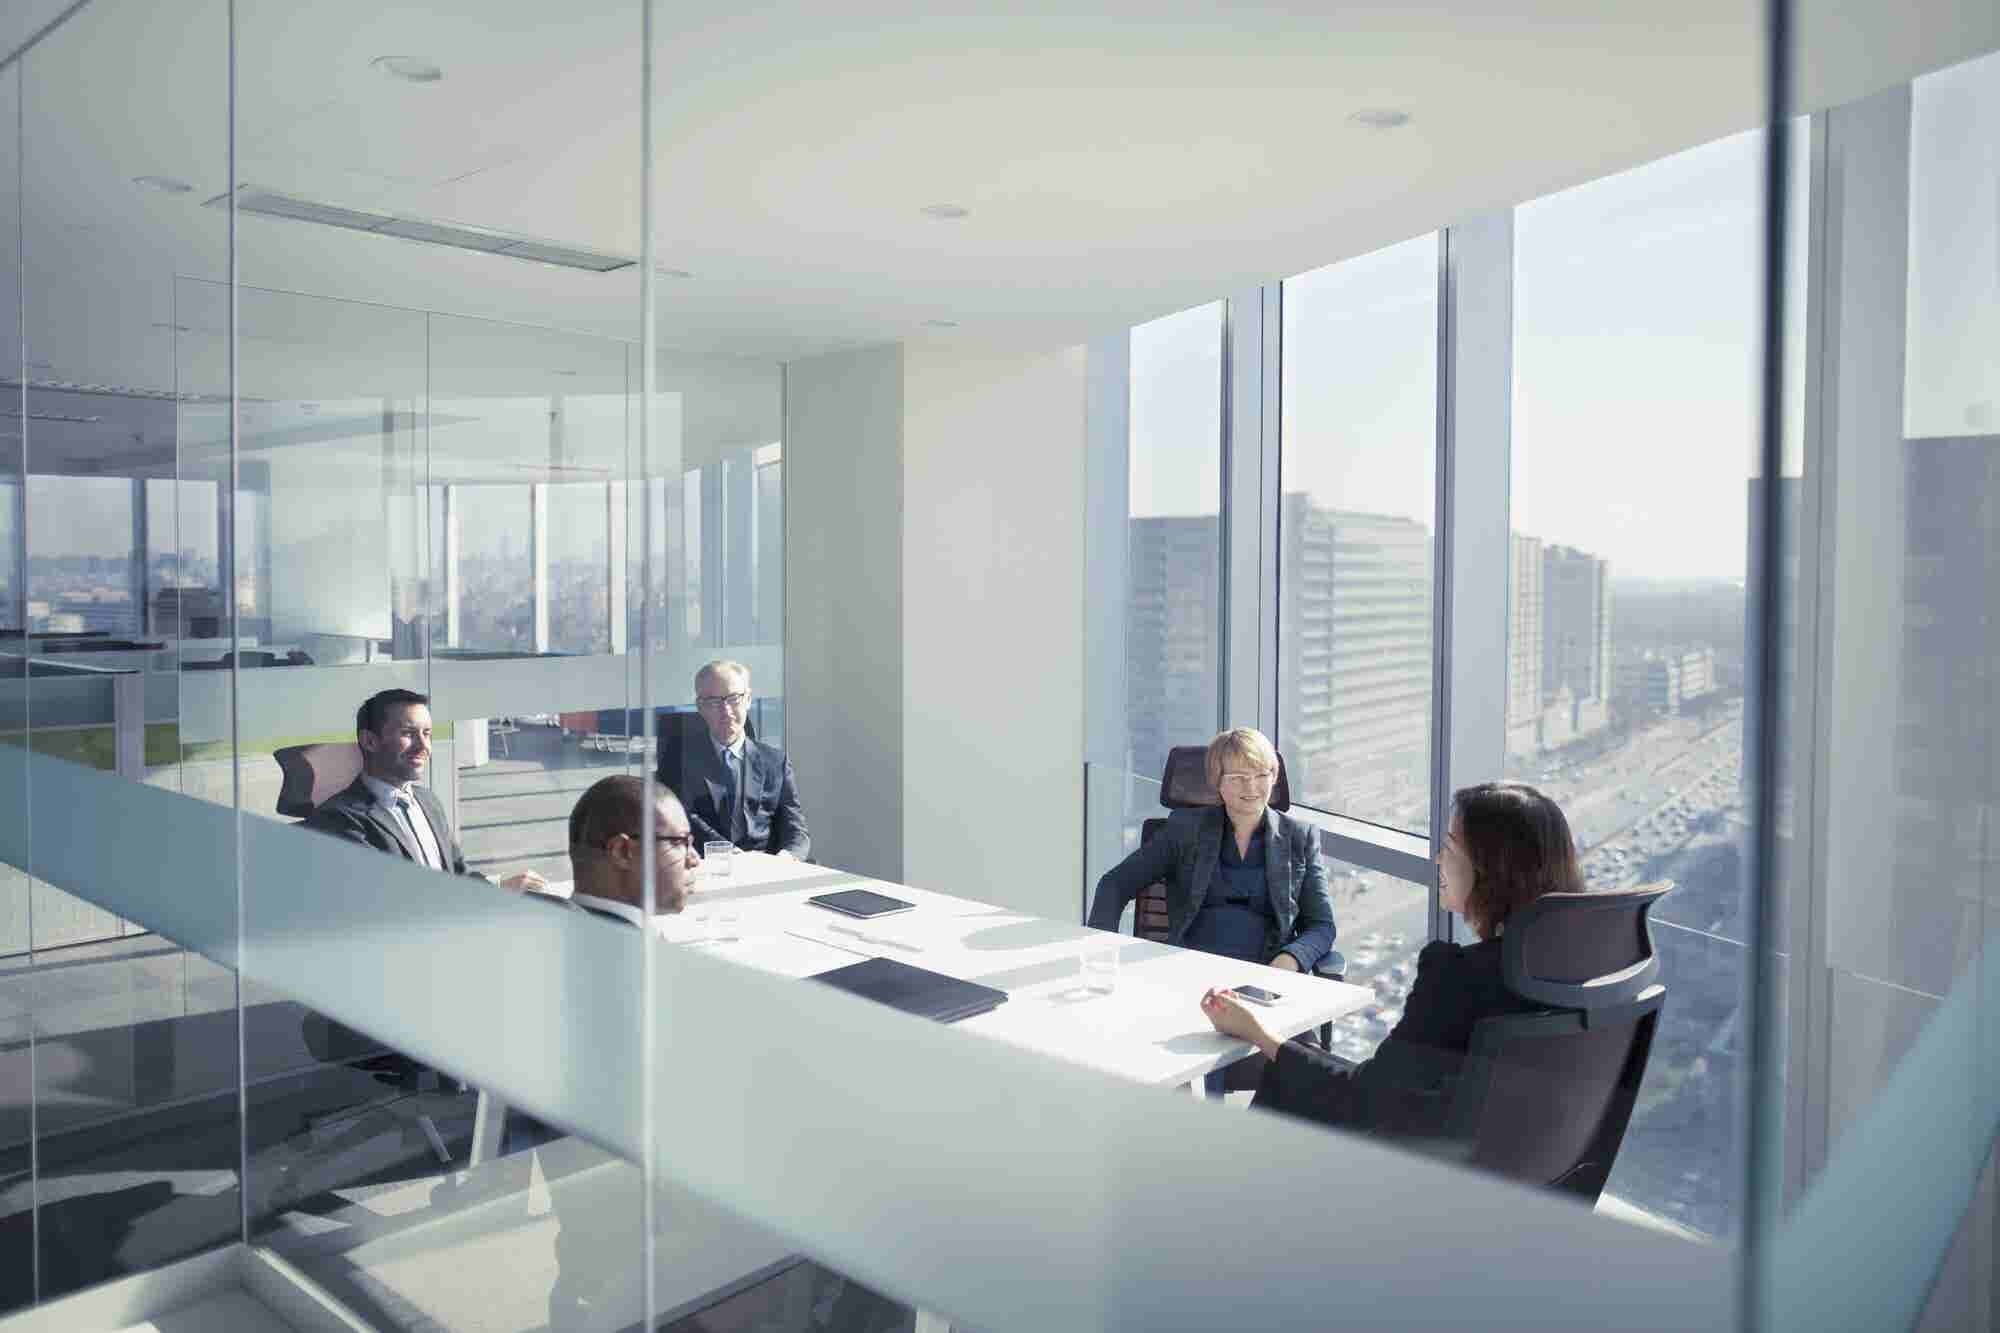 California to Require Public Companies to Have at Least One Woman on Their Boards of Directors by 2019